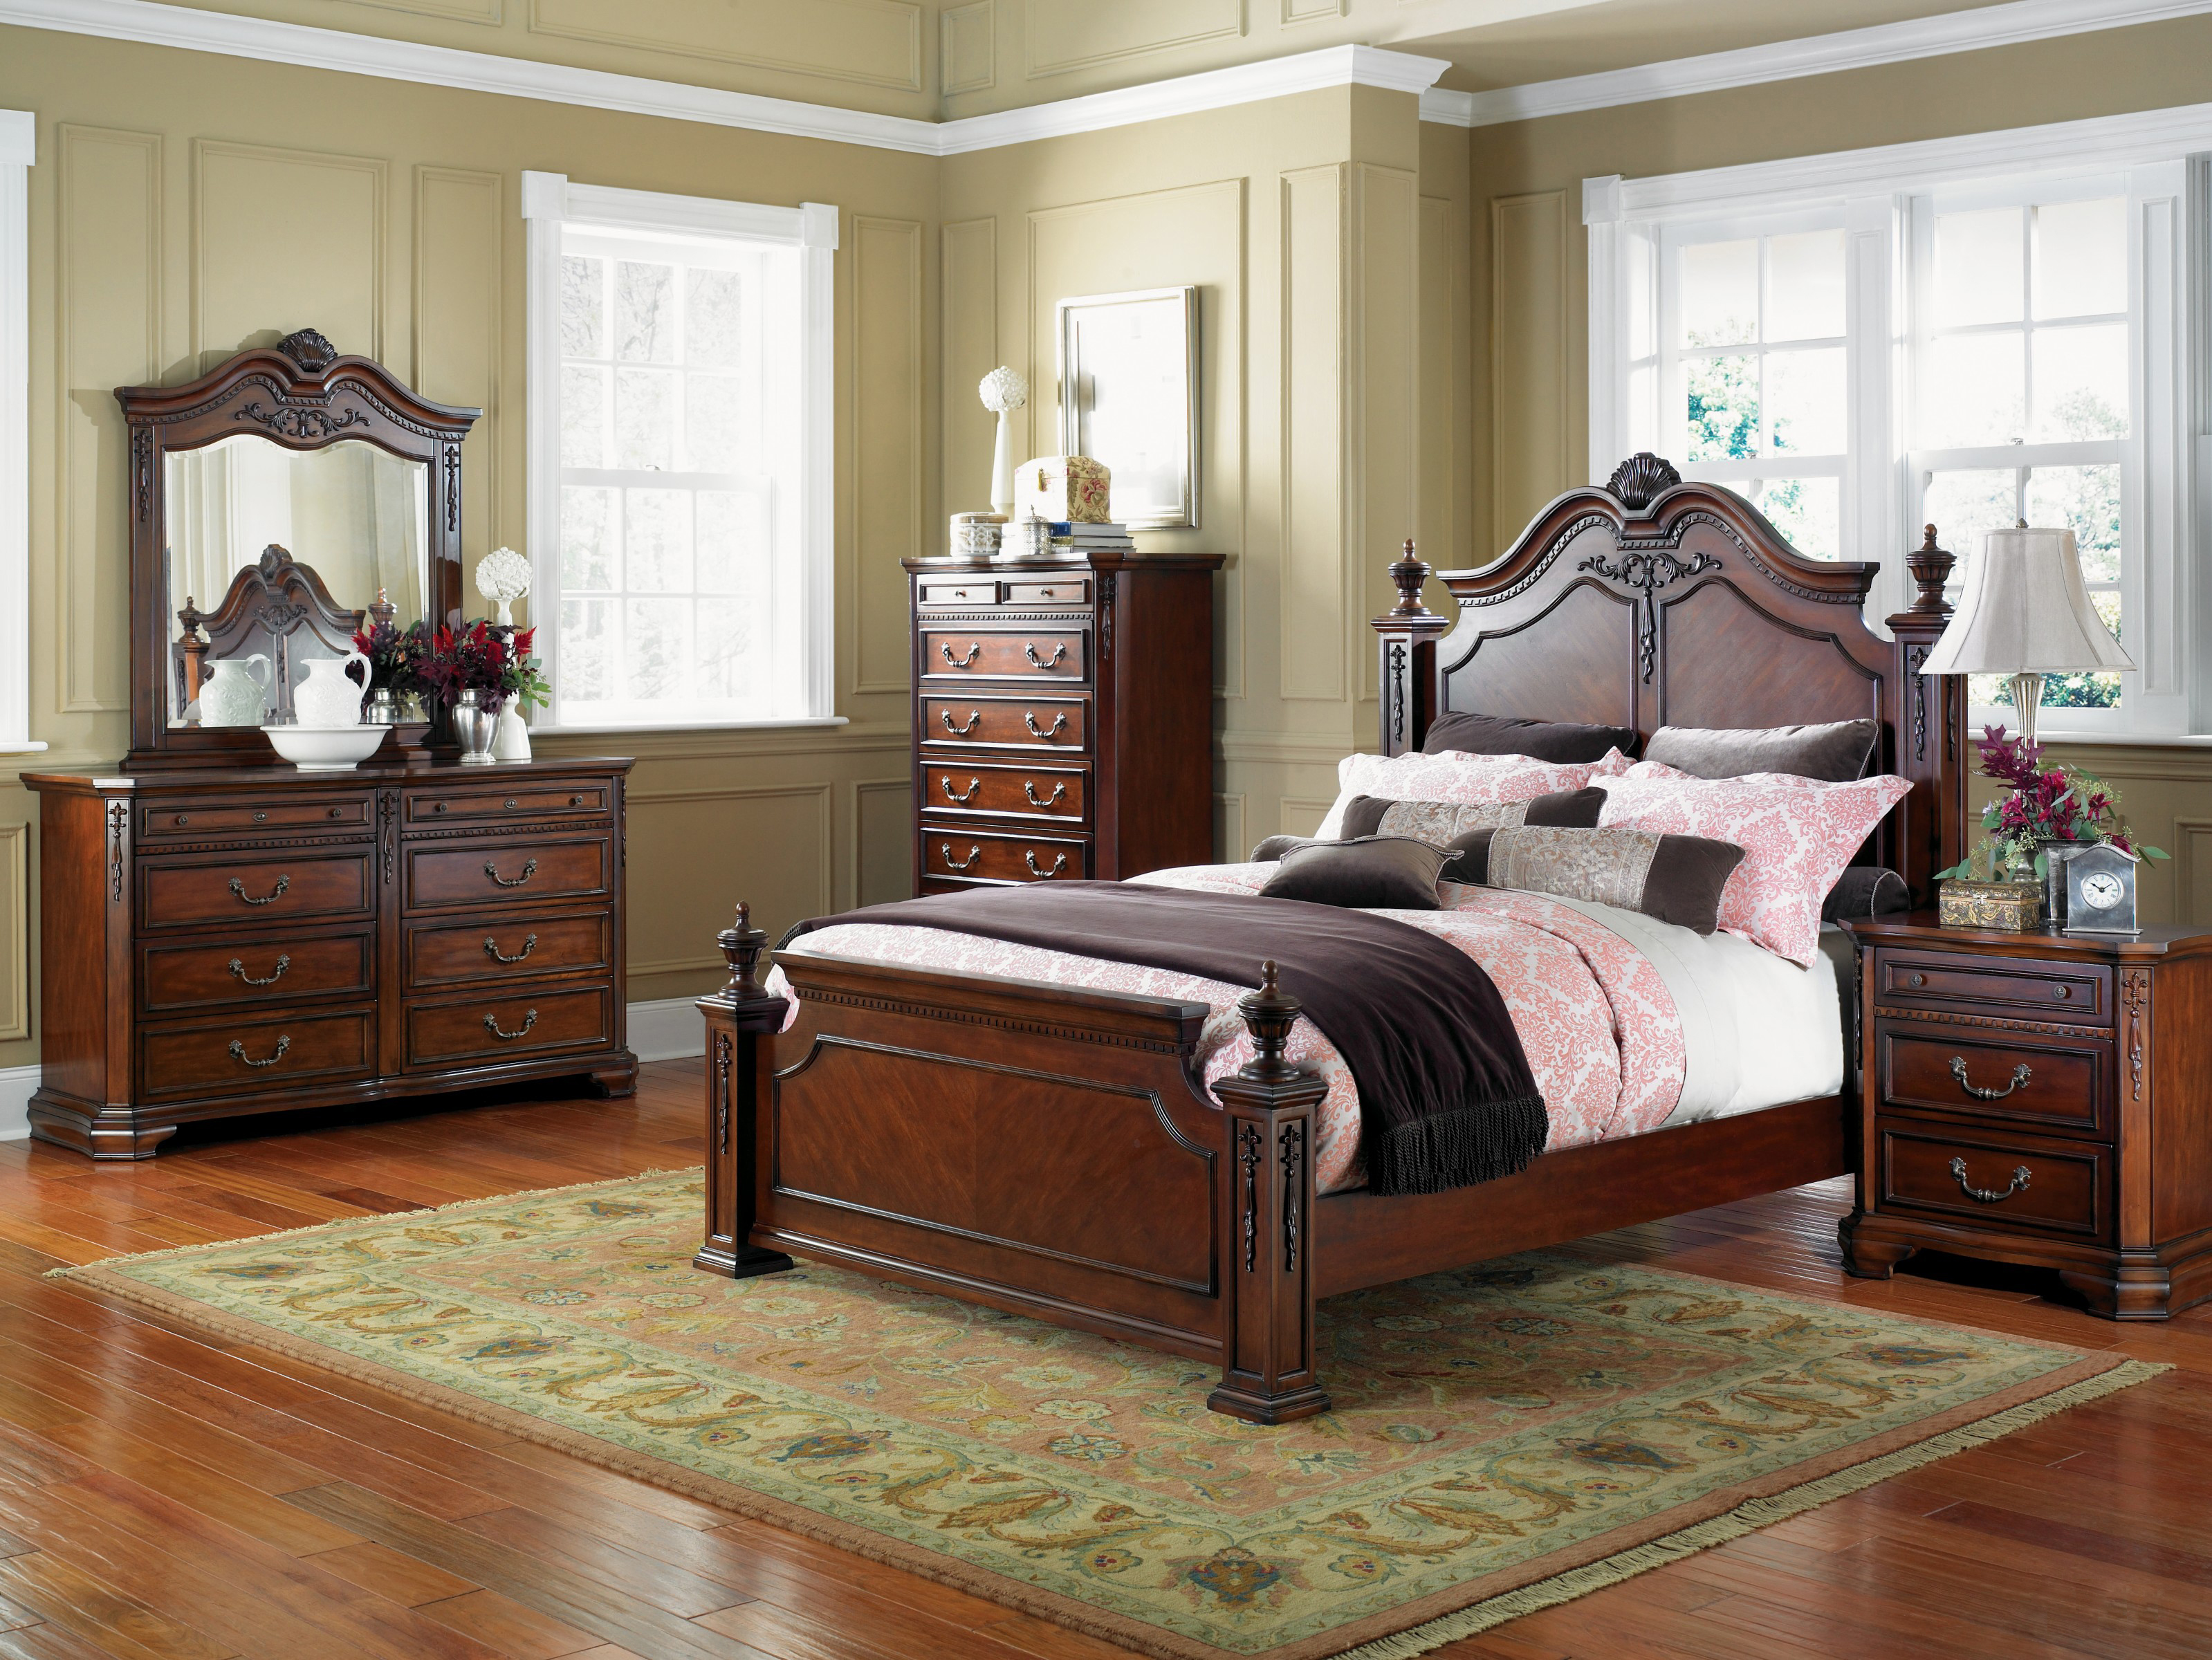 Bedroom furniture for Cuartos decorados